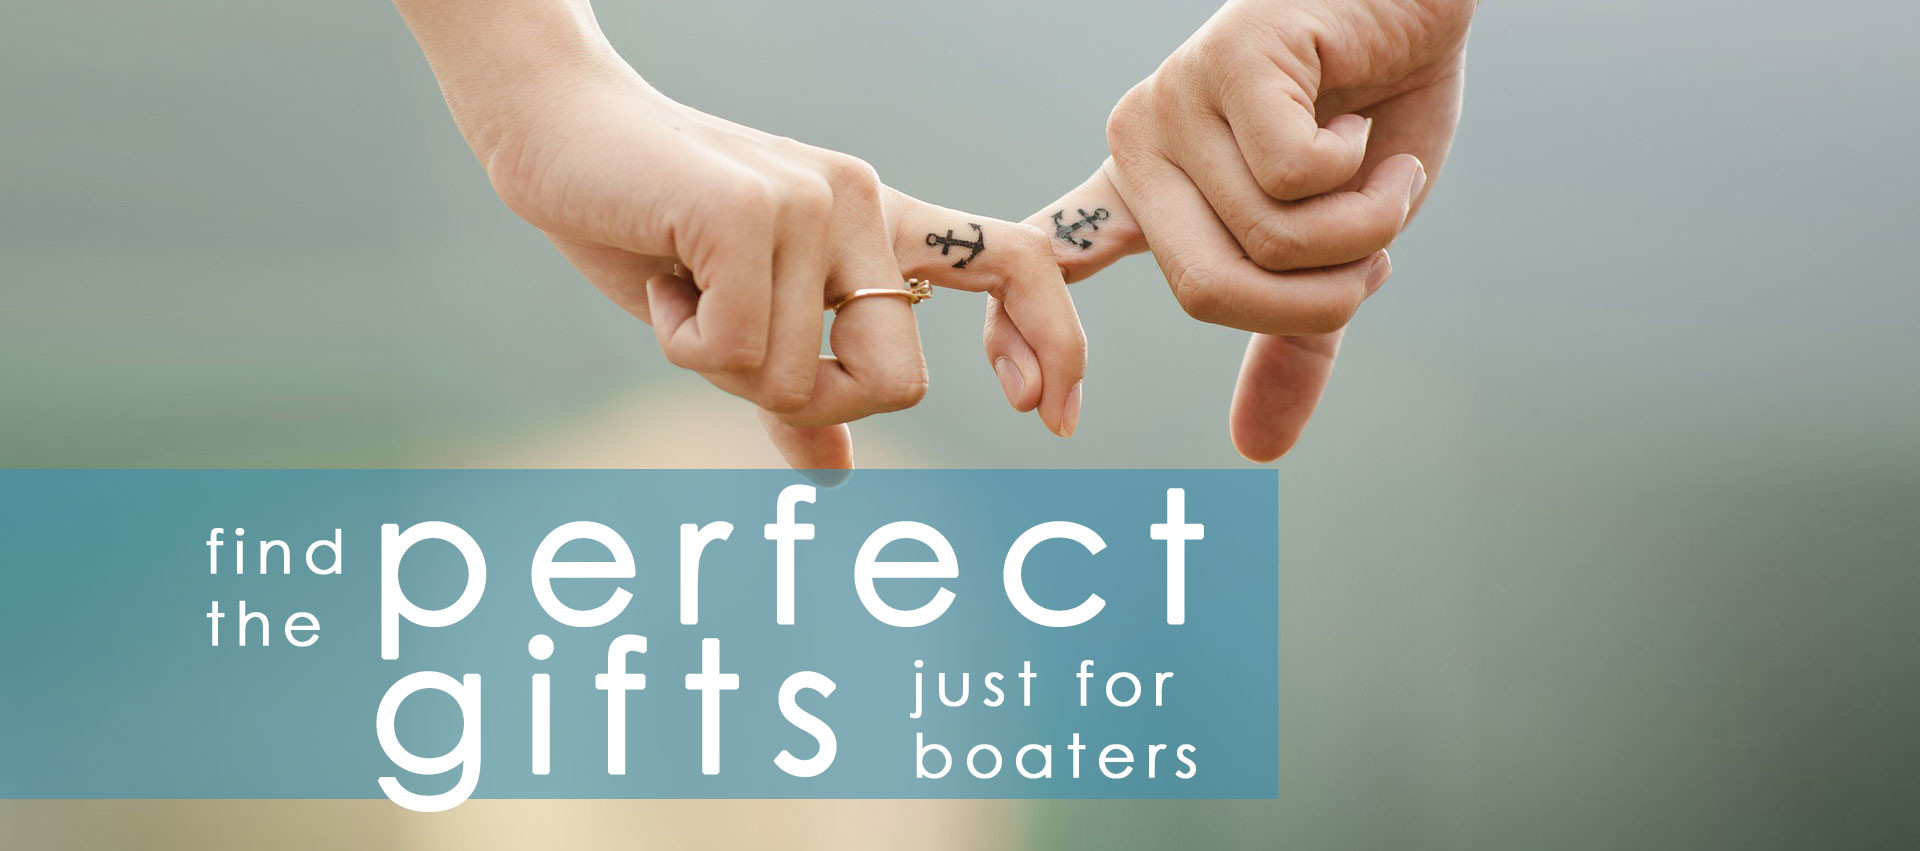 boat gifts just for boaters